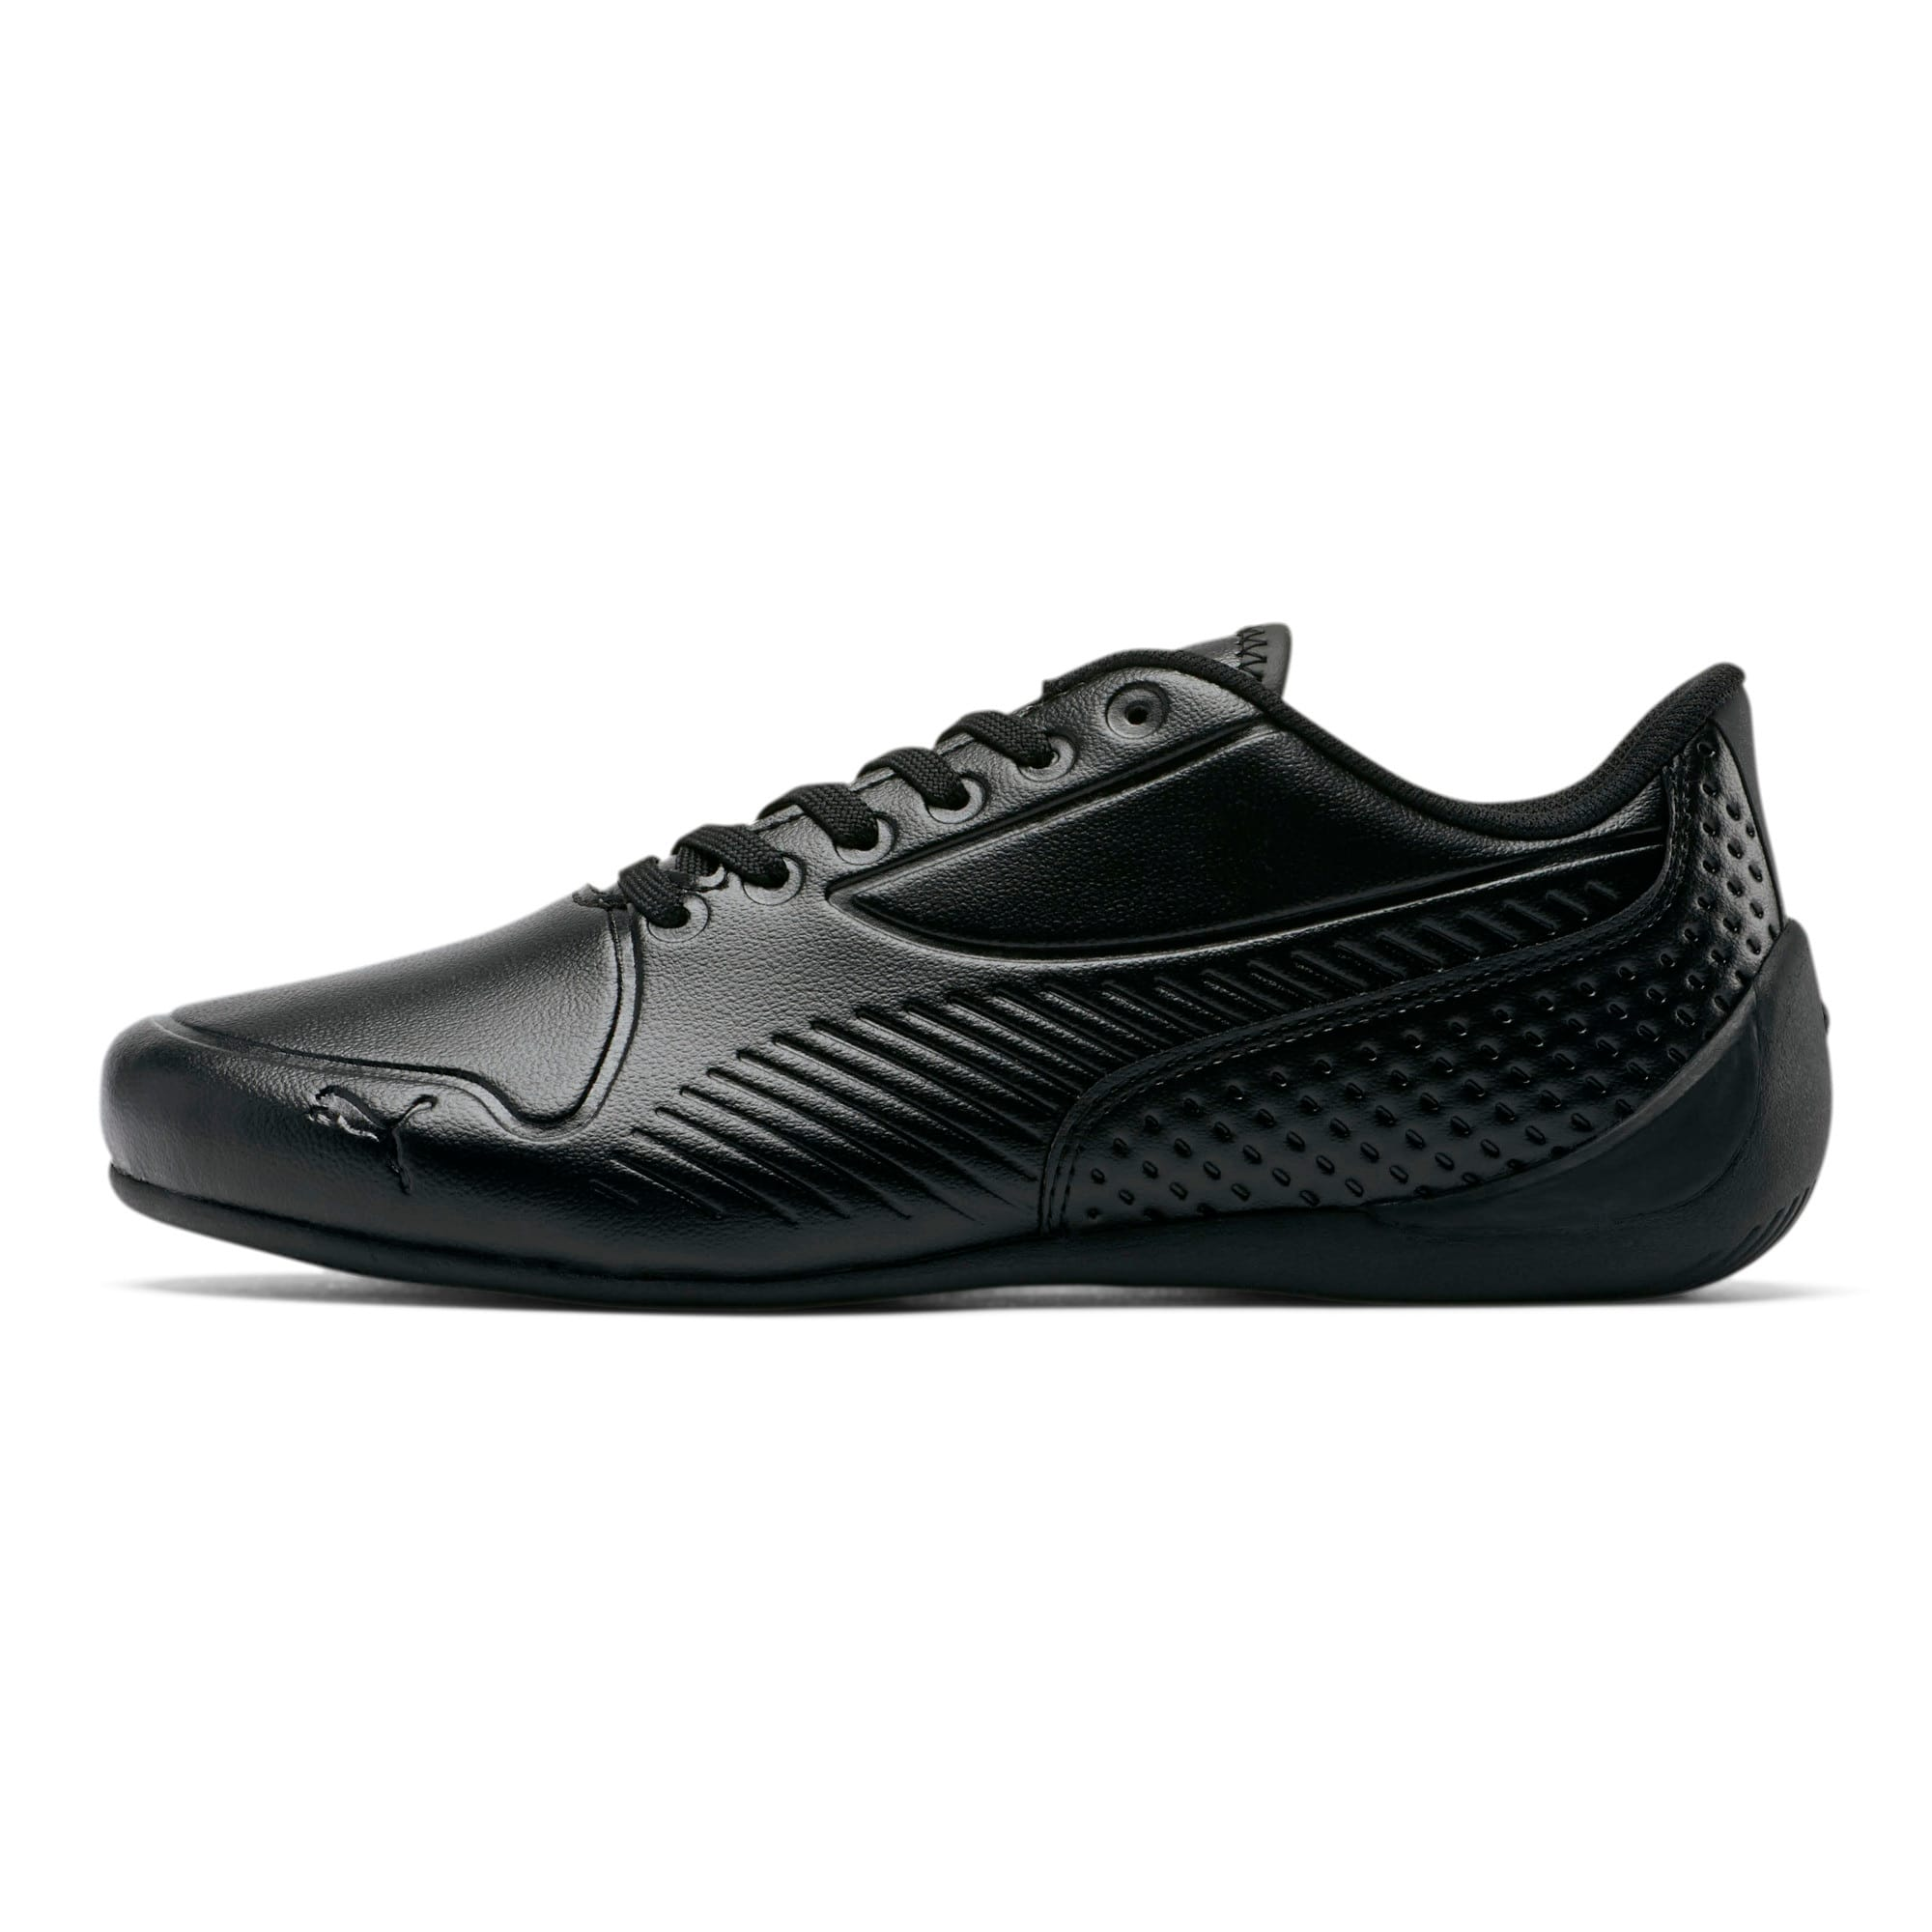 Thumbnail 1 of Drift Cat 7S Ultra Shoes JR, Puma Black-Puma Black, medium